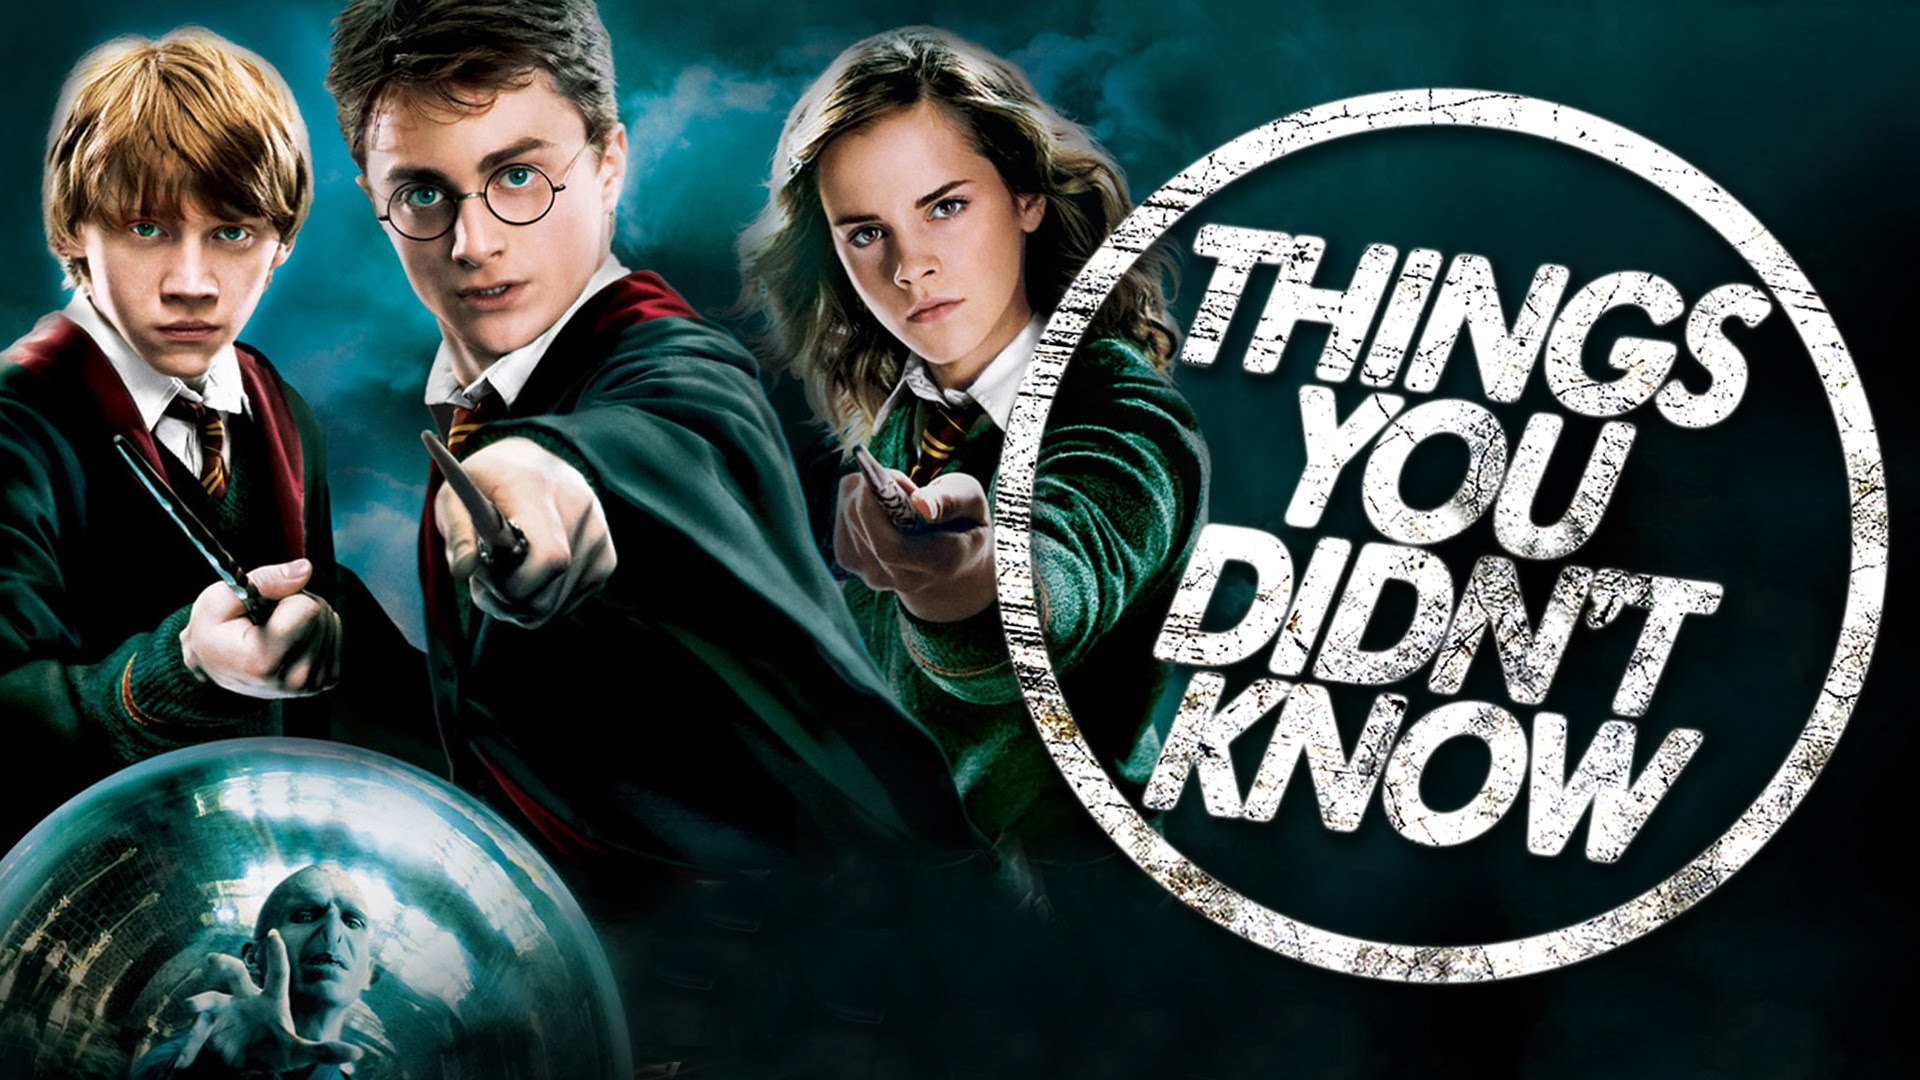 「關於《哈利波特》你可能不知道的 7 件事」- 7 Things You (Probably) Didn't Know about Harry Potter